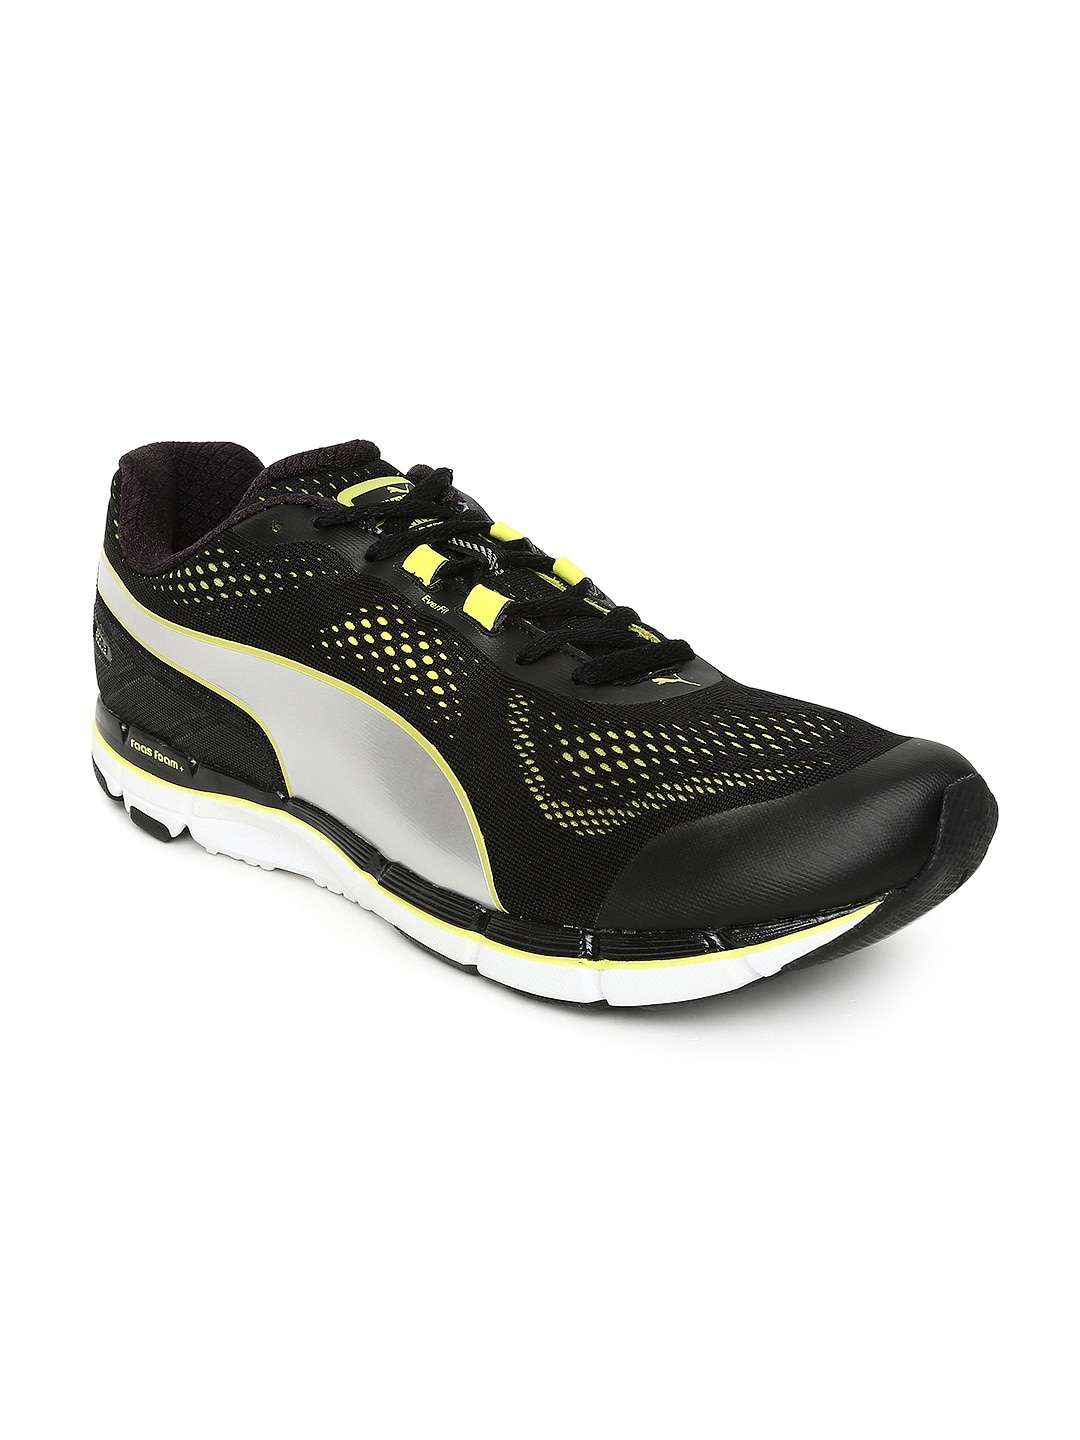 e7a4a11d1ac8 Sports Shoes for Men - Buy Men Sports Shoes Online in India - Myntra